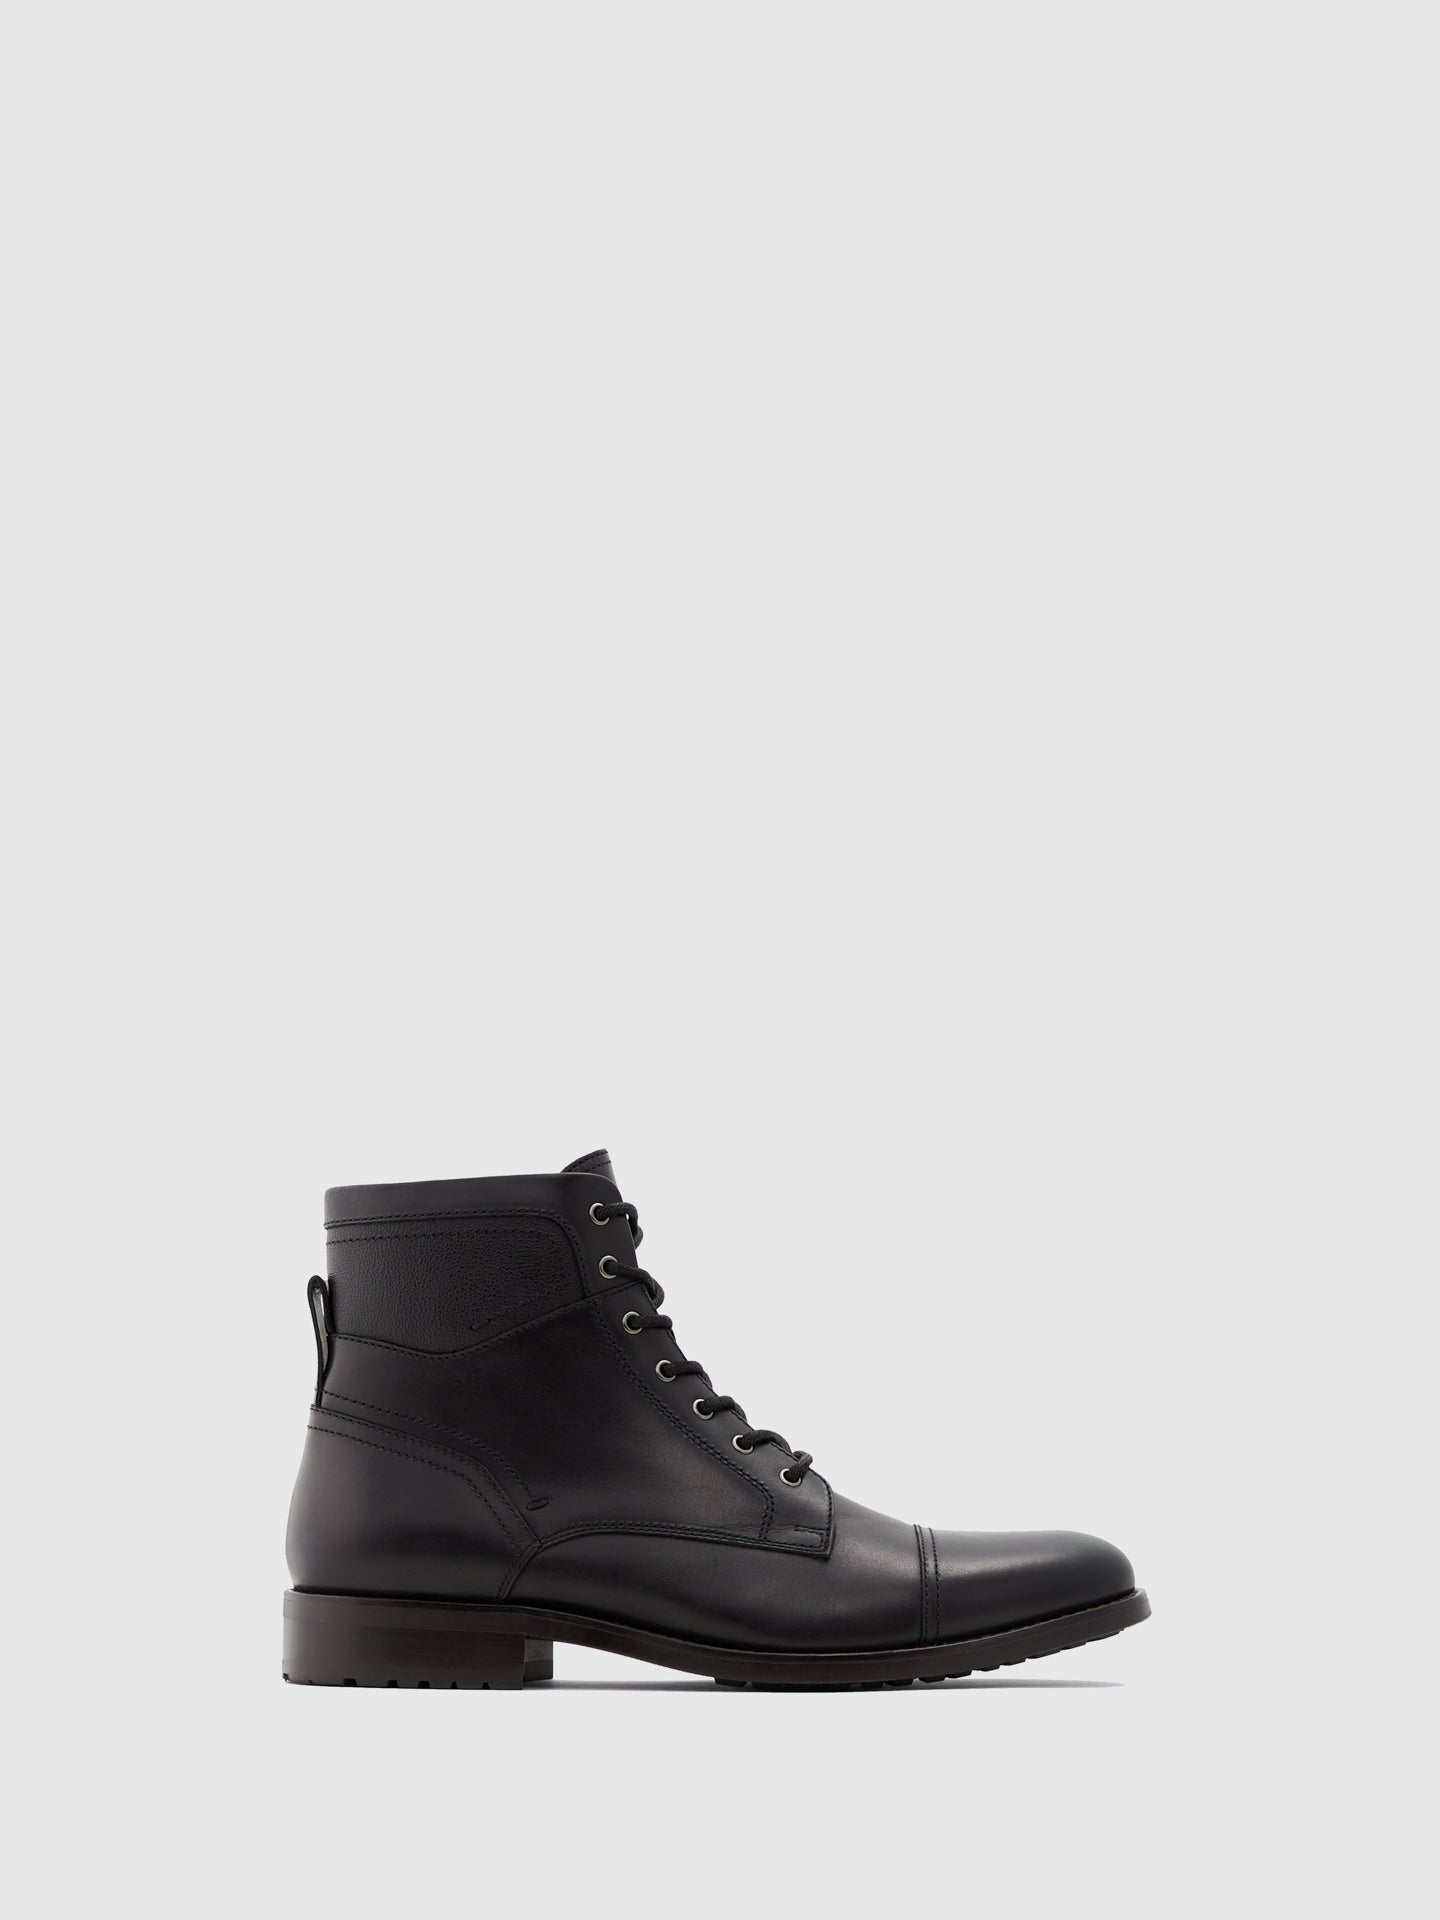 Aldo Black Lace-up Boots